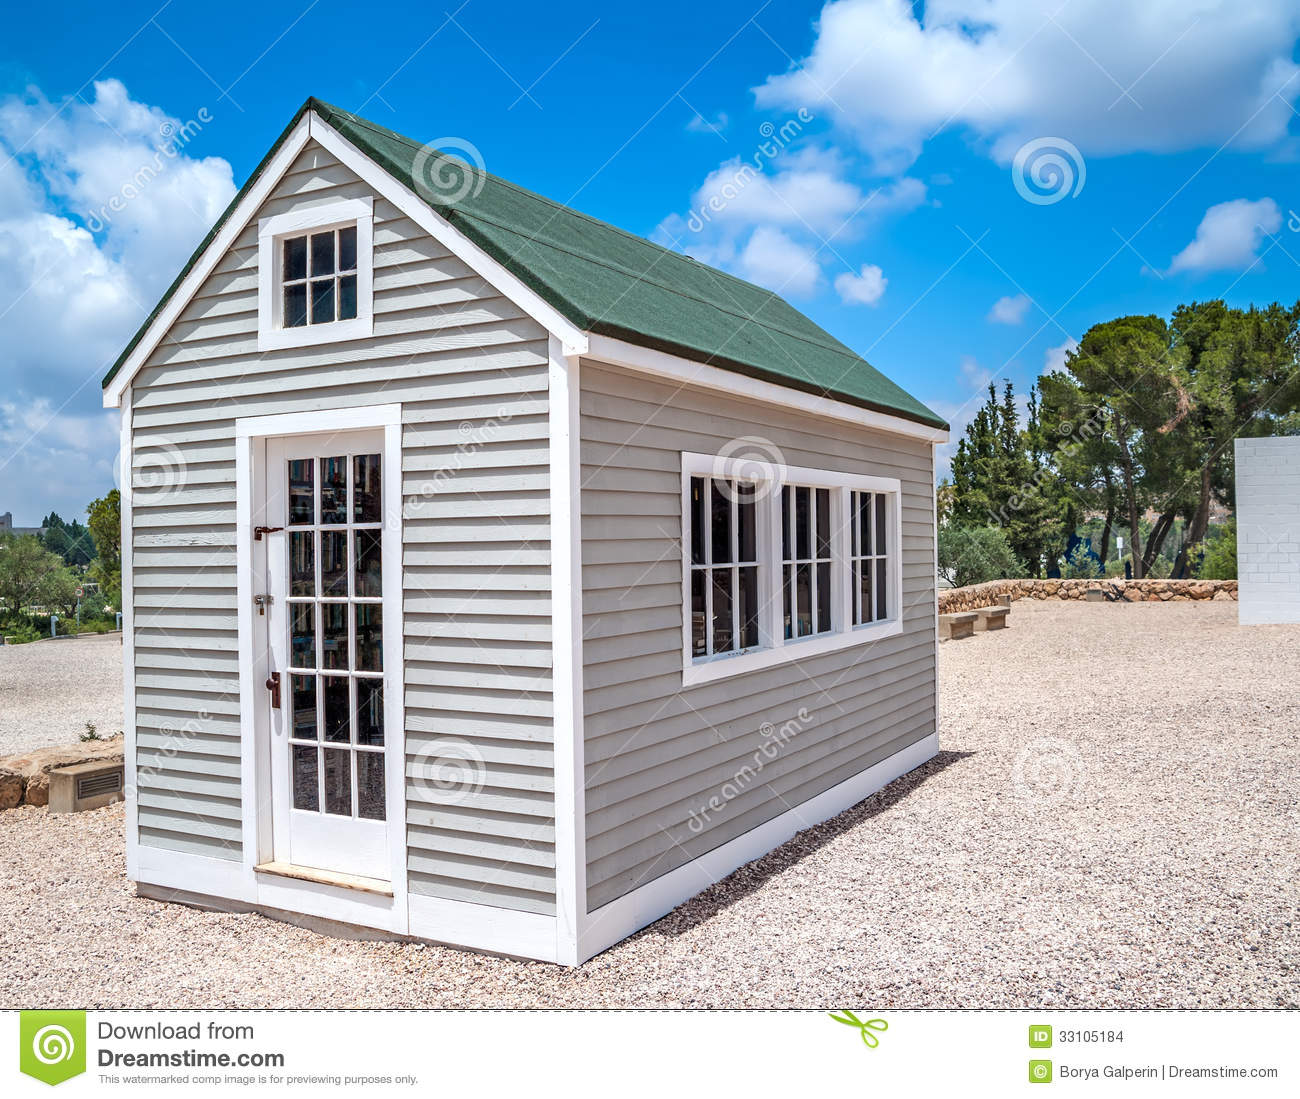 Small wooden house stock images image 33105184 for Small wooden house